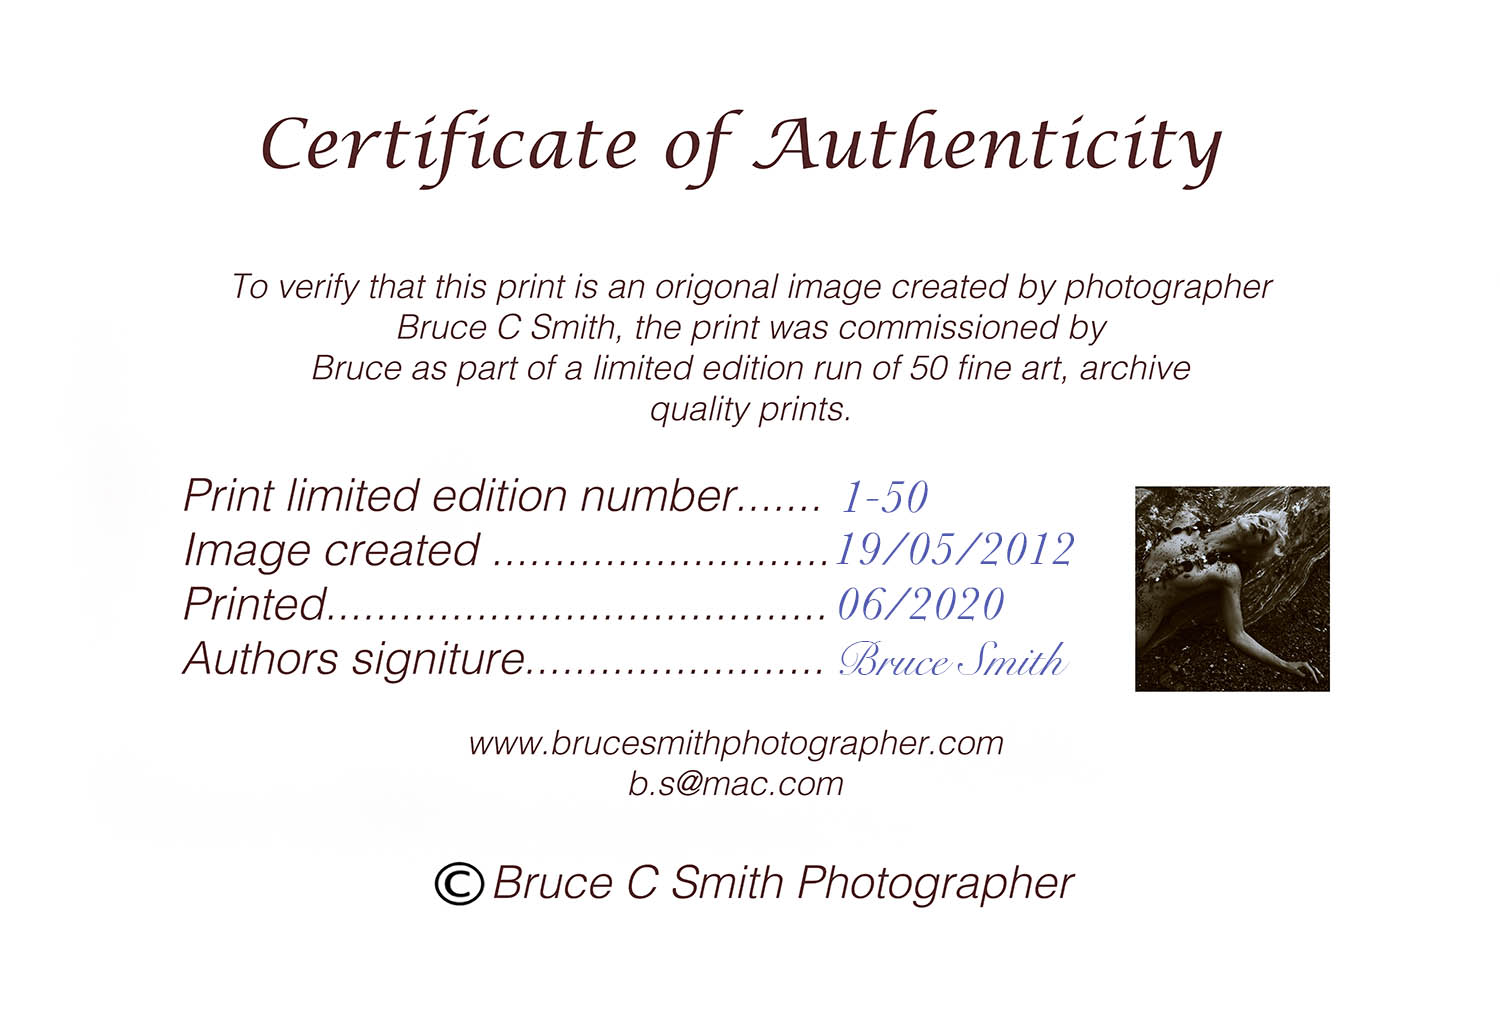 Limited edition signed photographic collectors fine art prints for sale, Fine art photographic prints